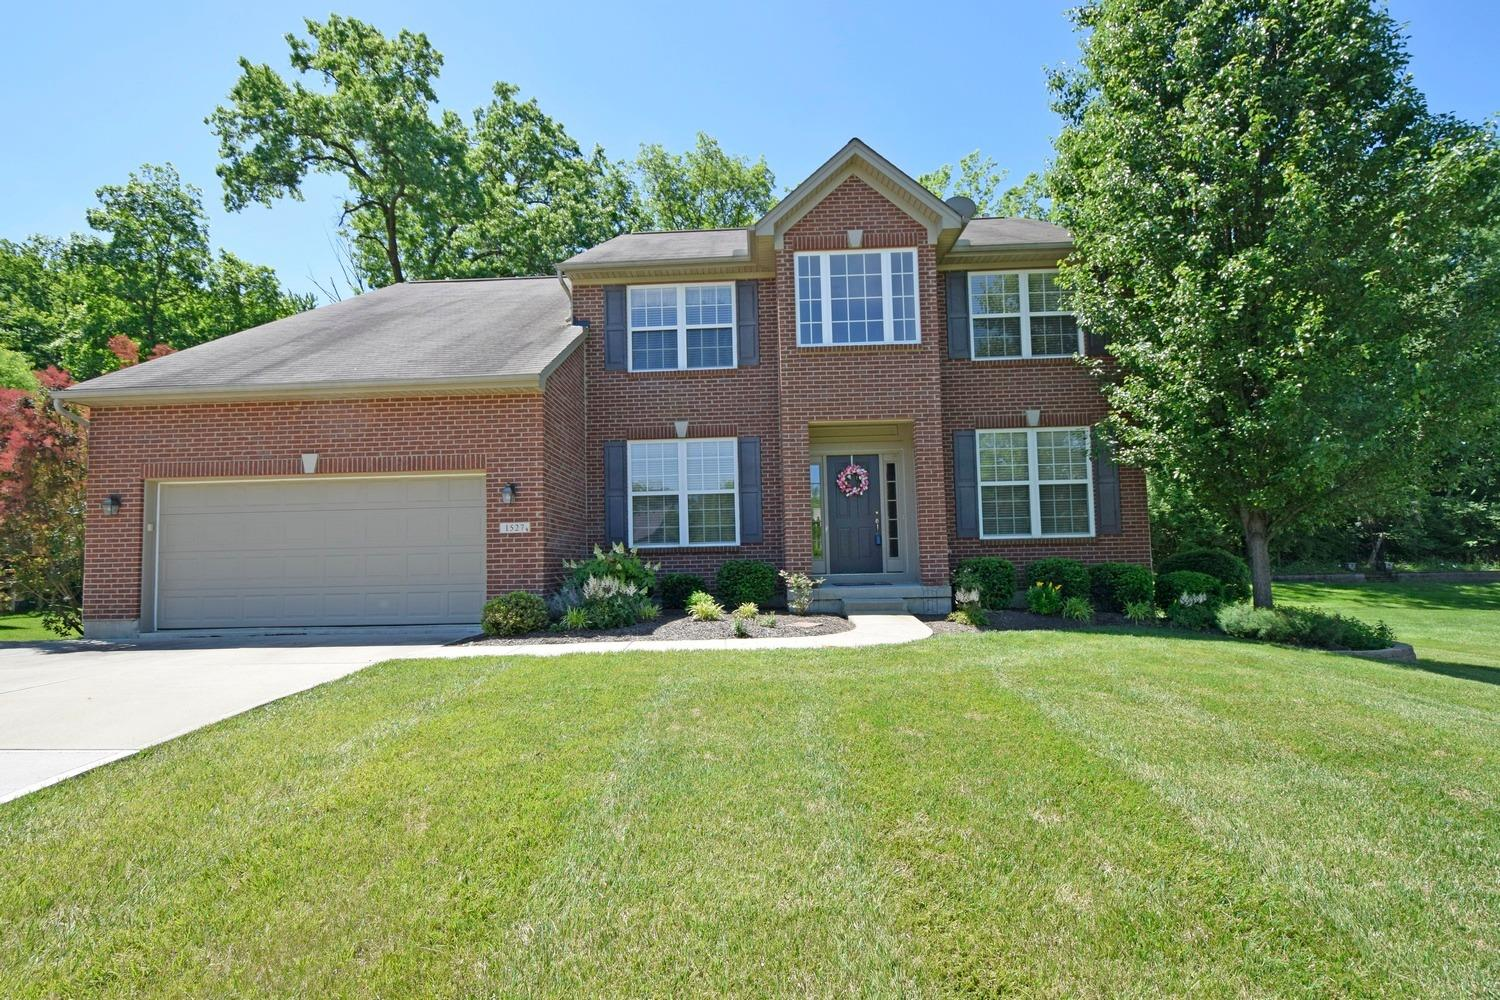 1527 Pointe Drive, Miami Twp, OH 45150